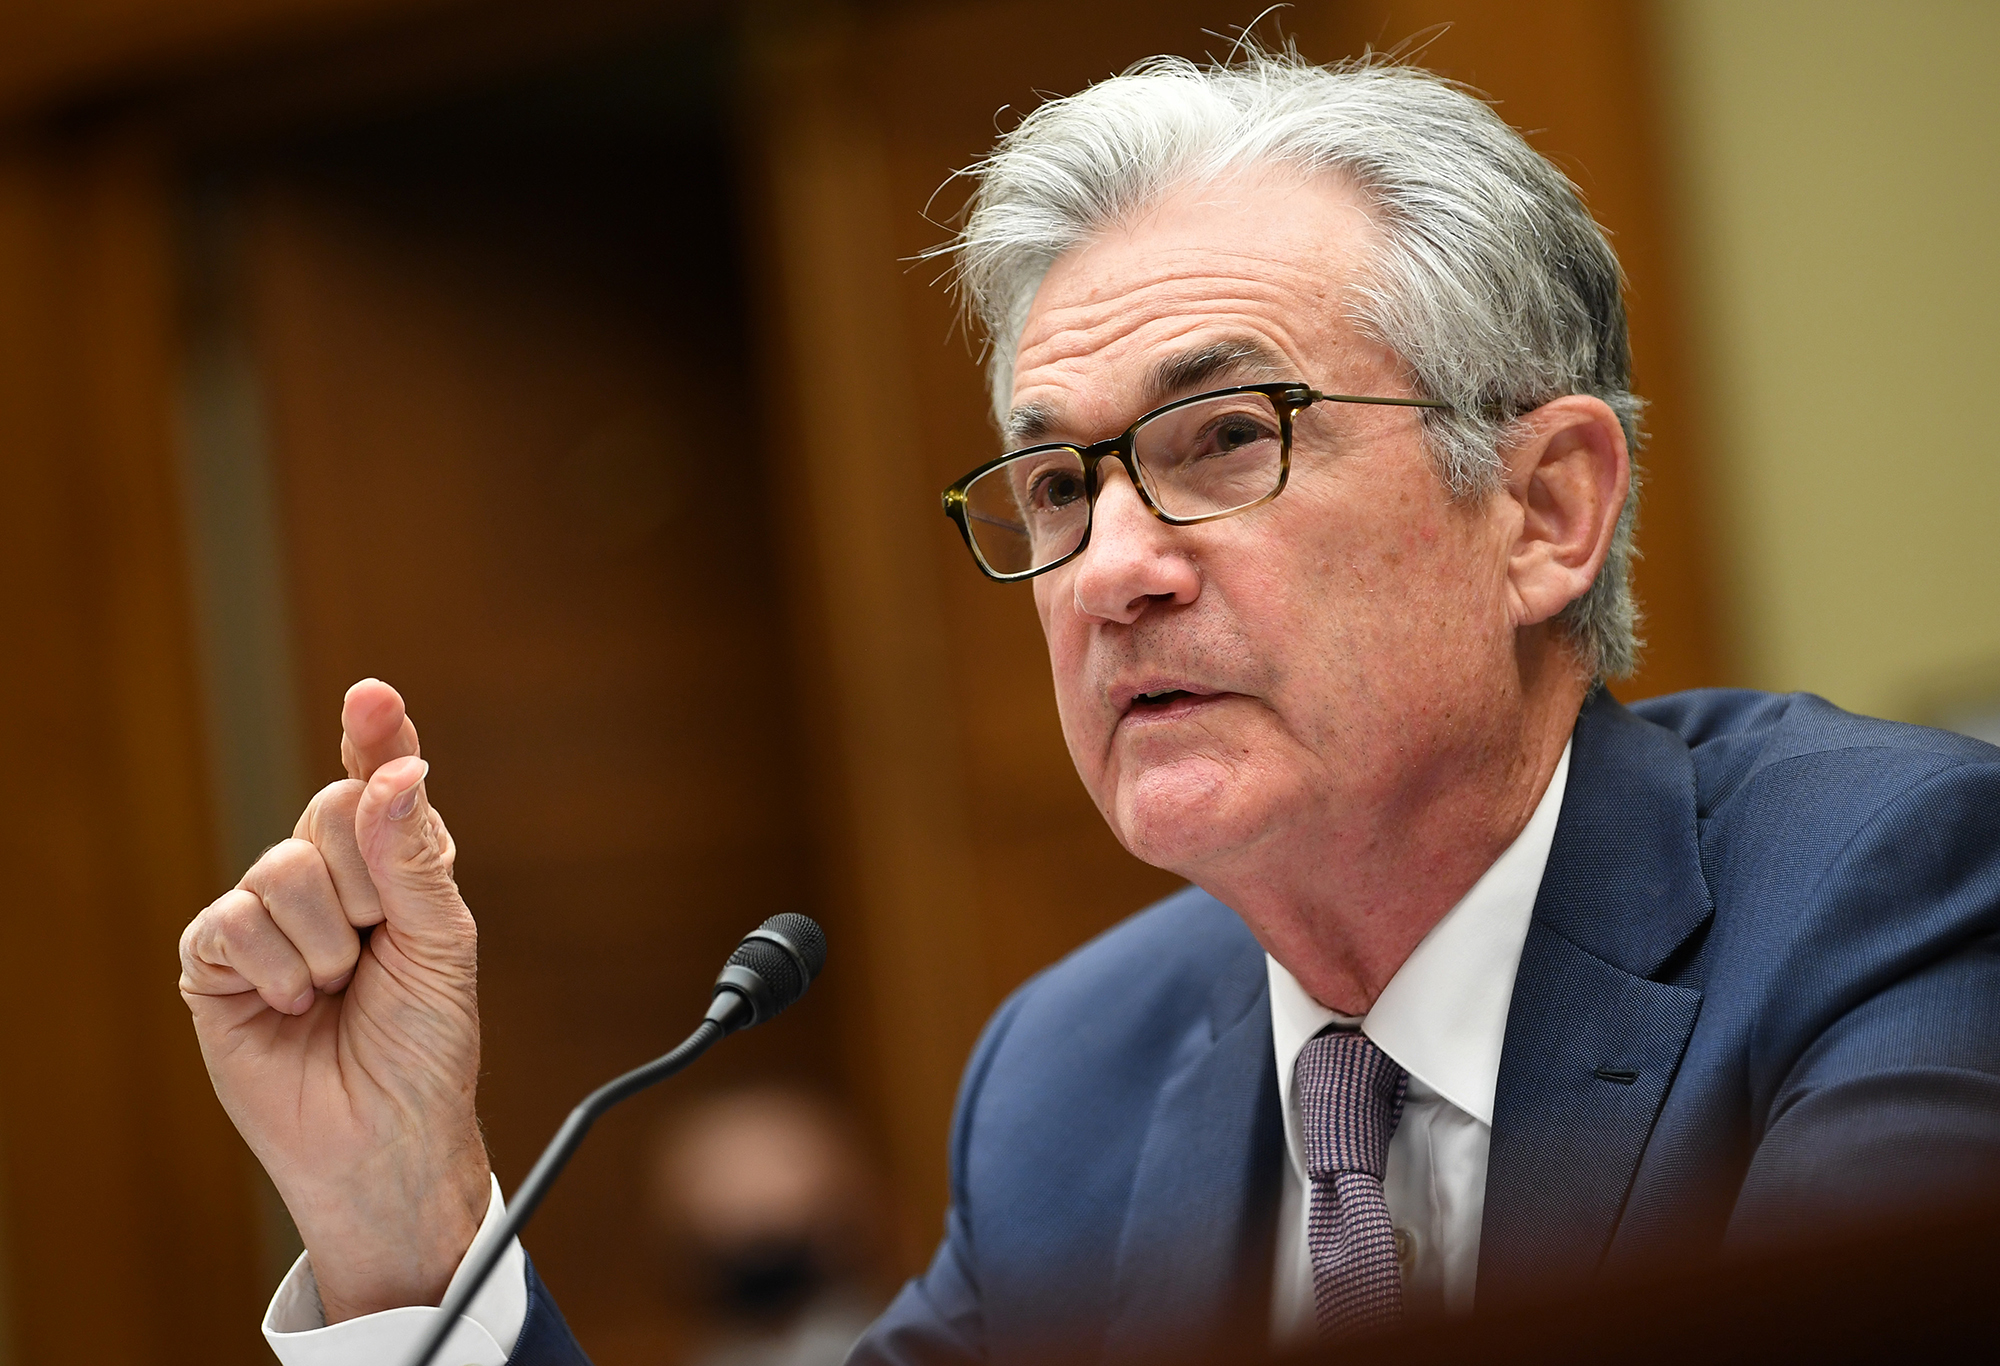 The Fed expects to raise rates sooner than you'd think